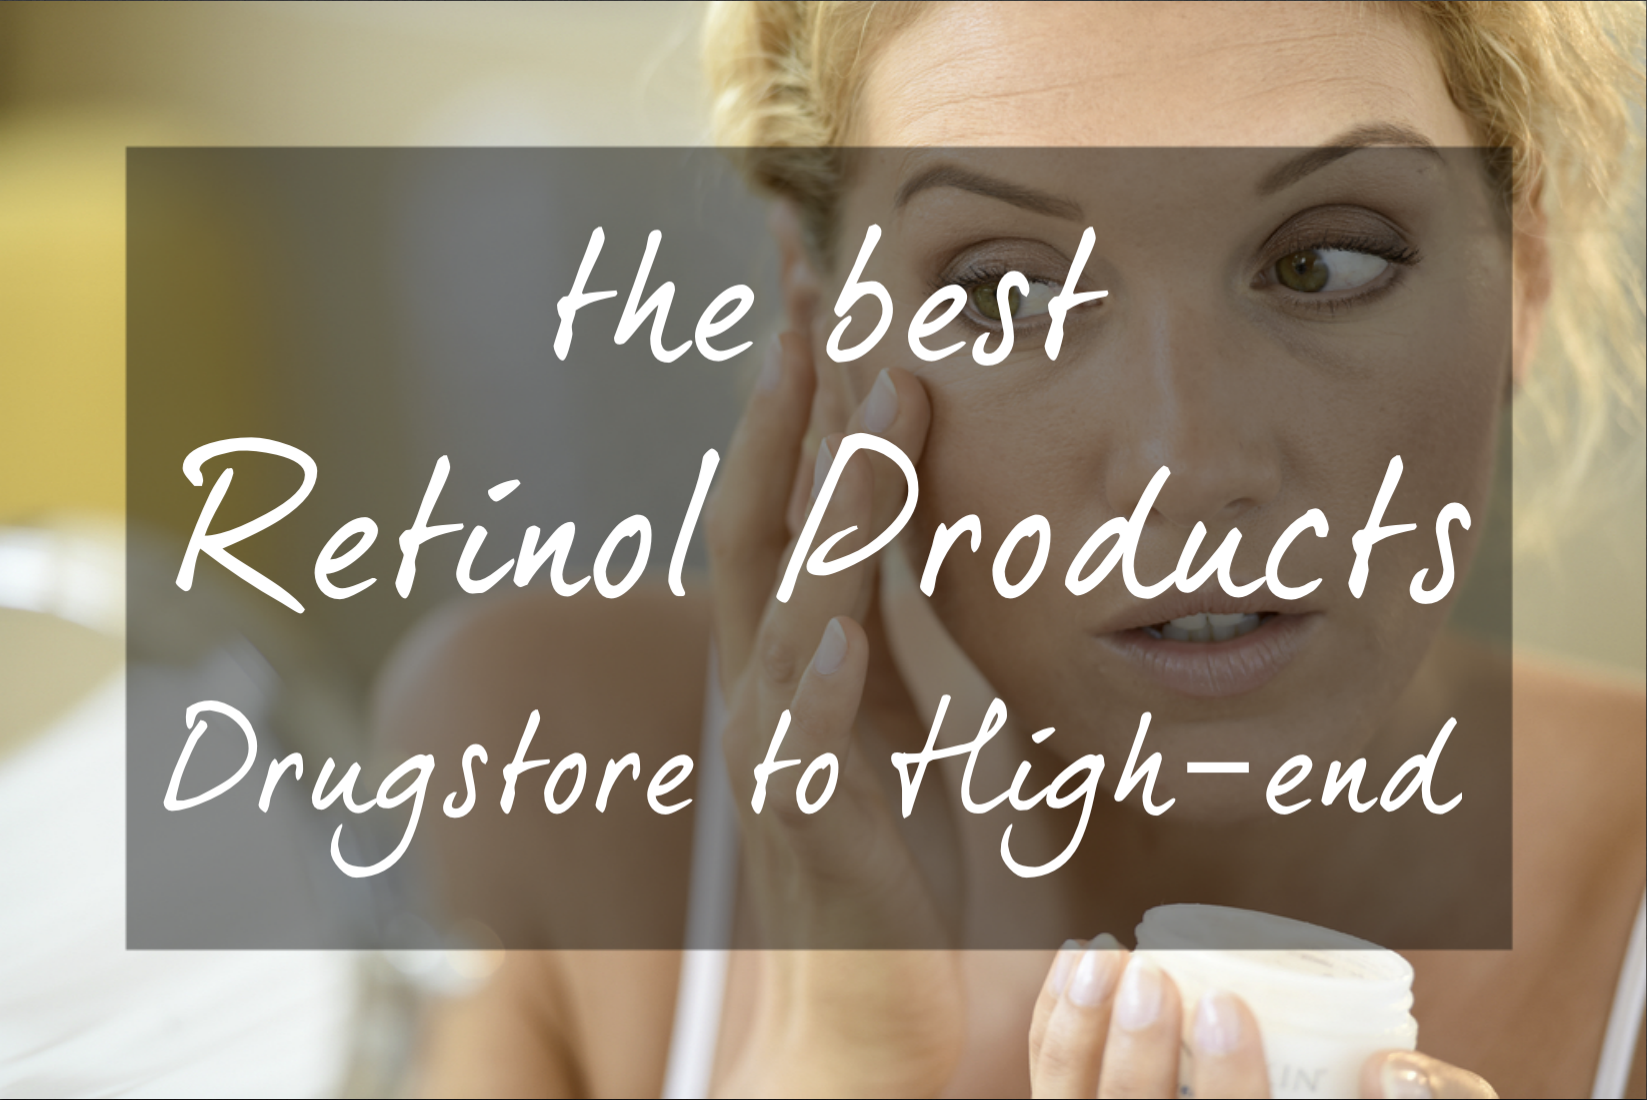 The best retinol serums and creams at every price point! These affordable yet hard-working heroes treat dark spots, fine lines & wrinkles, acne, sun damage and large pores while being gentle on your skin.